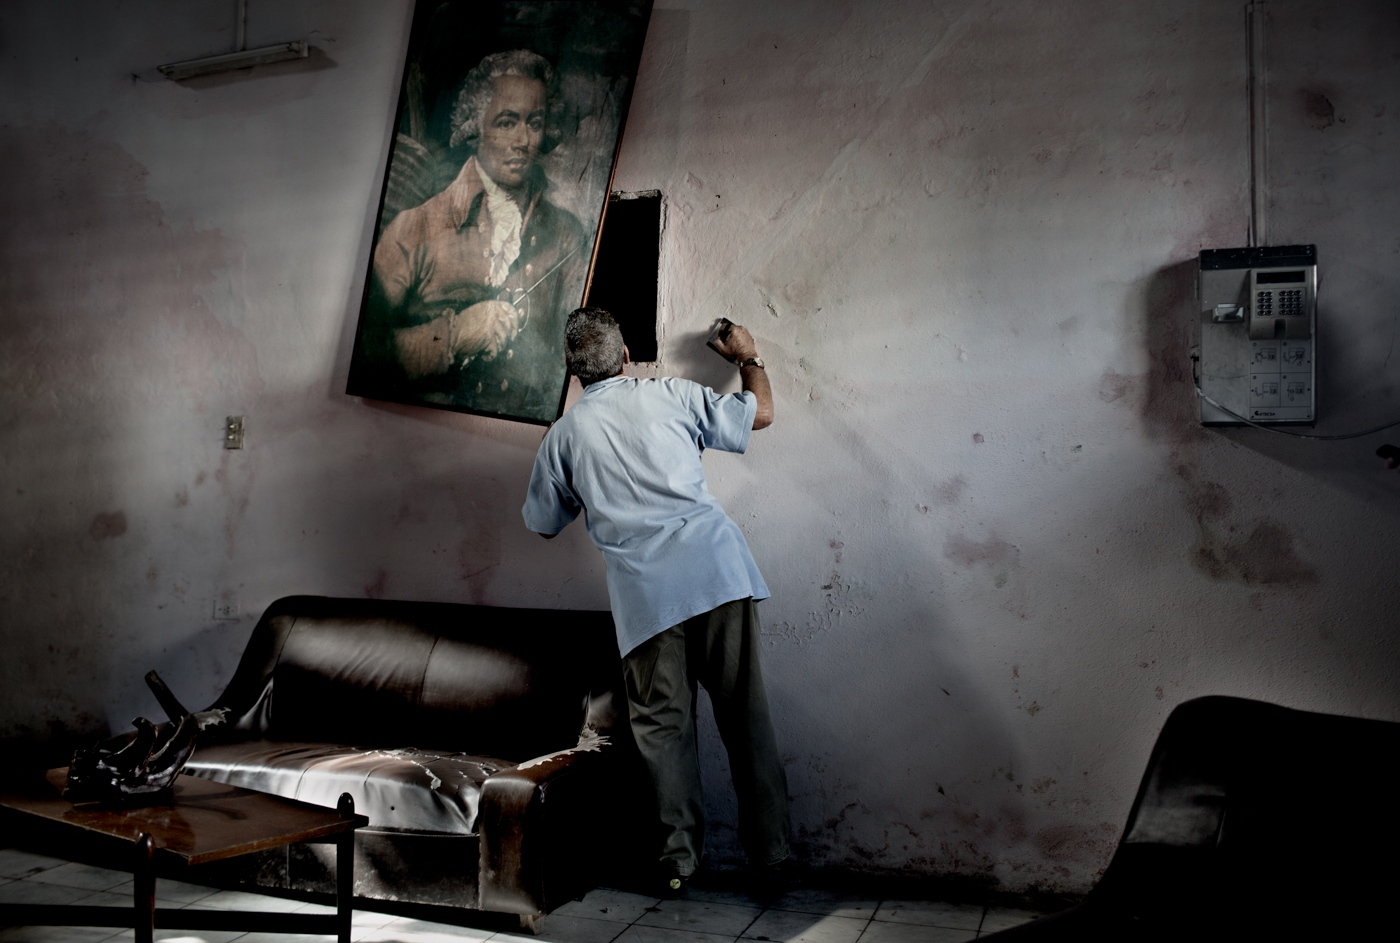 A man looks behind a painting at theLaura Alonso Dance Academy to read the water meter. Laura Alonso Academy is an offset of the National Ballet. To date, most of its graduates have defected to various countries outside of Cuba. The Academy functions mostly on donations as the funds for the arts are mostly spent on the National Ballet.